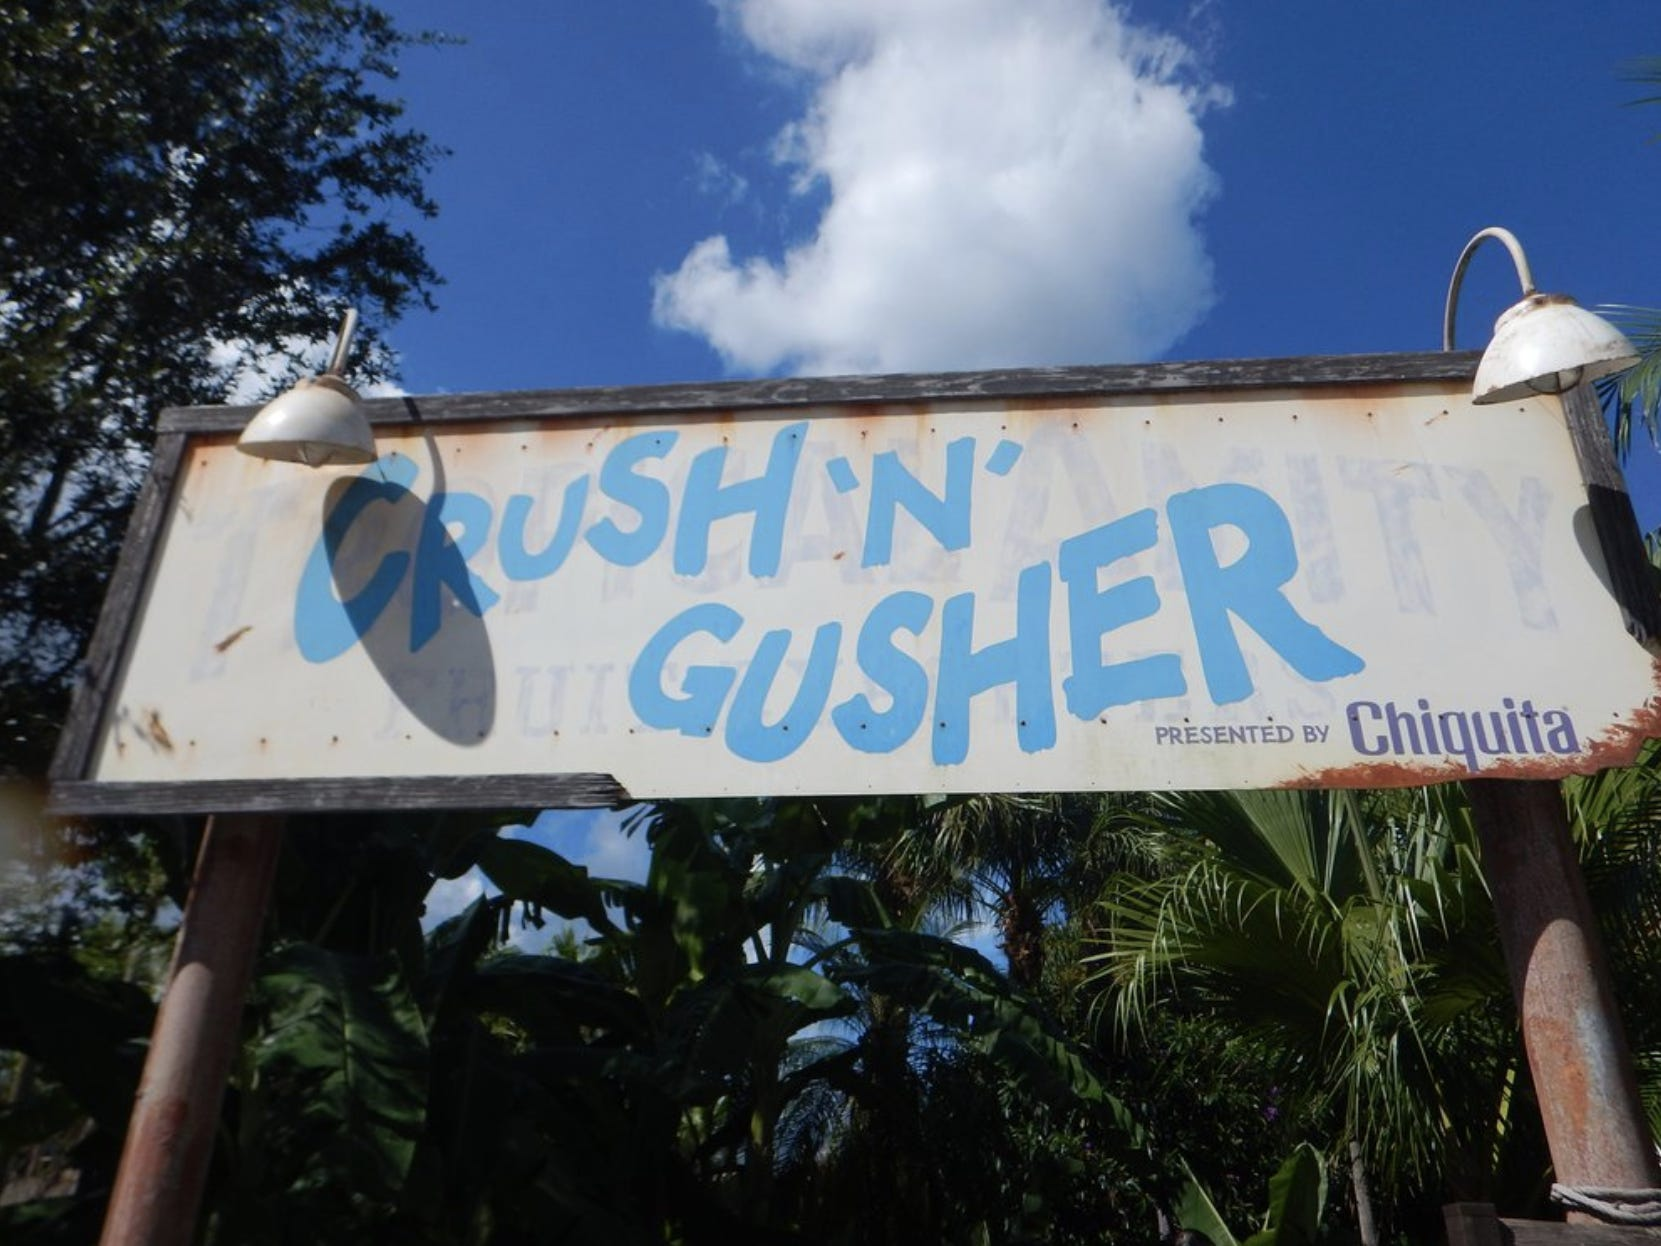 Slide 12 of 17: Crush 'n' Gusher is a fast water coaster at Typhoon Lagoon. A Disney Imagineer told the Orlando Sentinel that it pumps 1,350 gallons of water per minute.